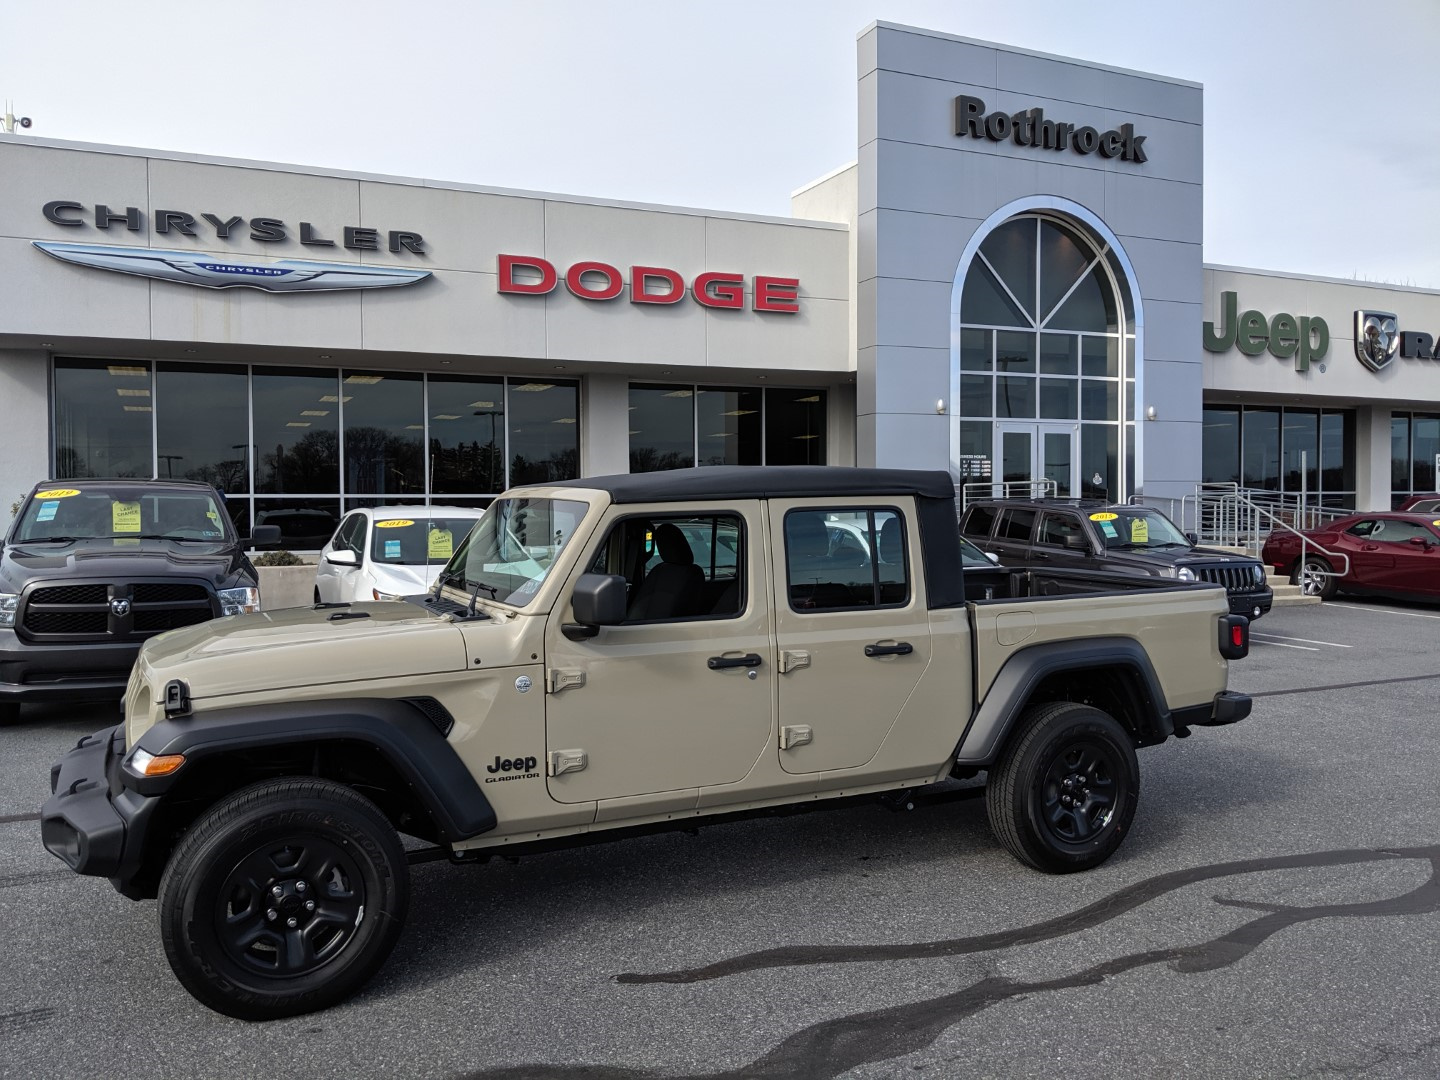 Signed 2020 Jeep Gladiator Sport W Automatic 316 Mo 316 Das 38 810 Msrp Via Rodo Share Deals Tips Leasehackr Forum